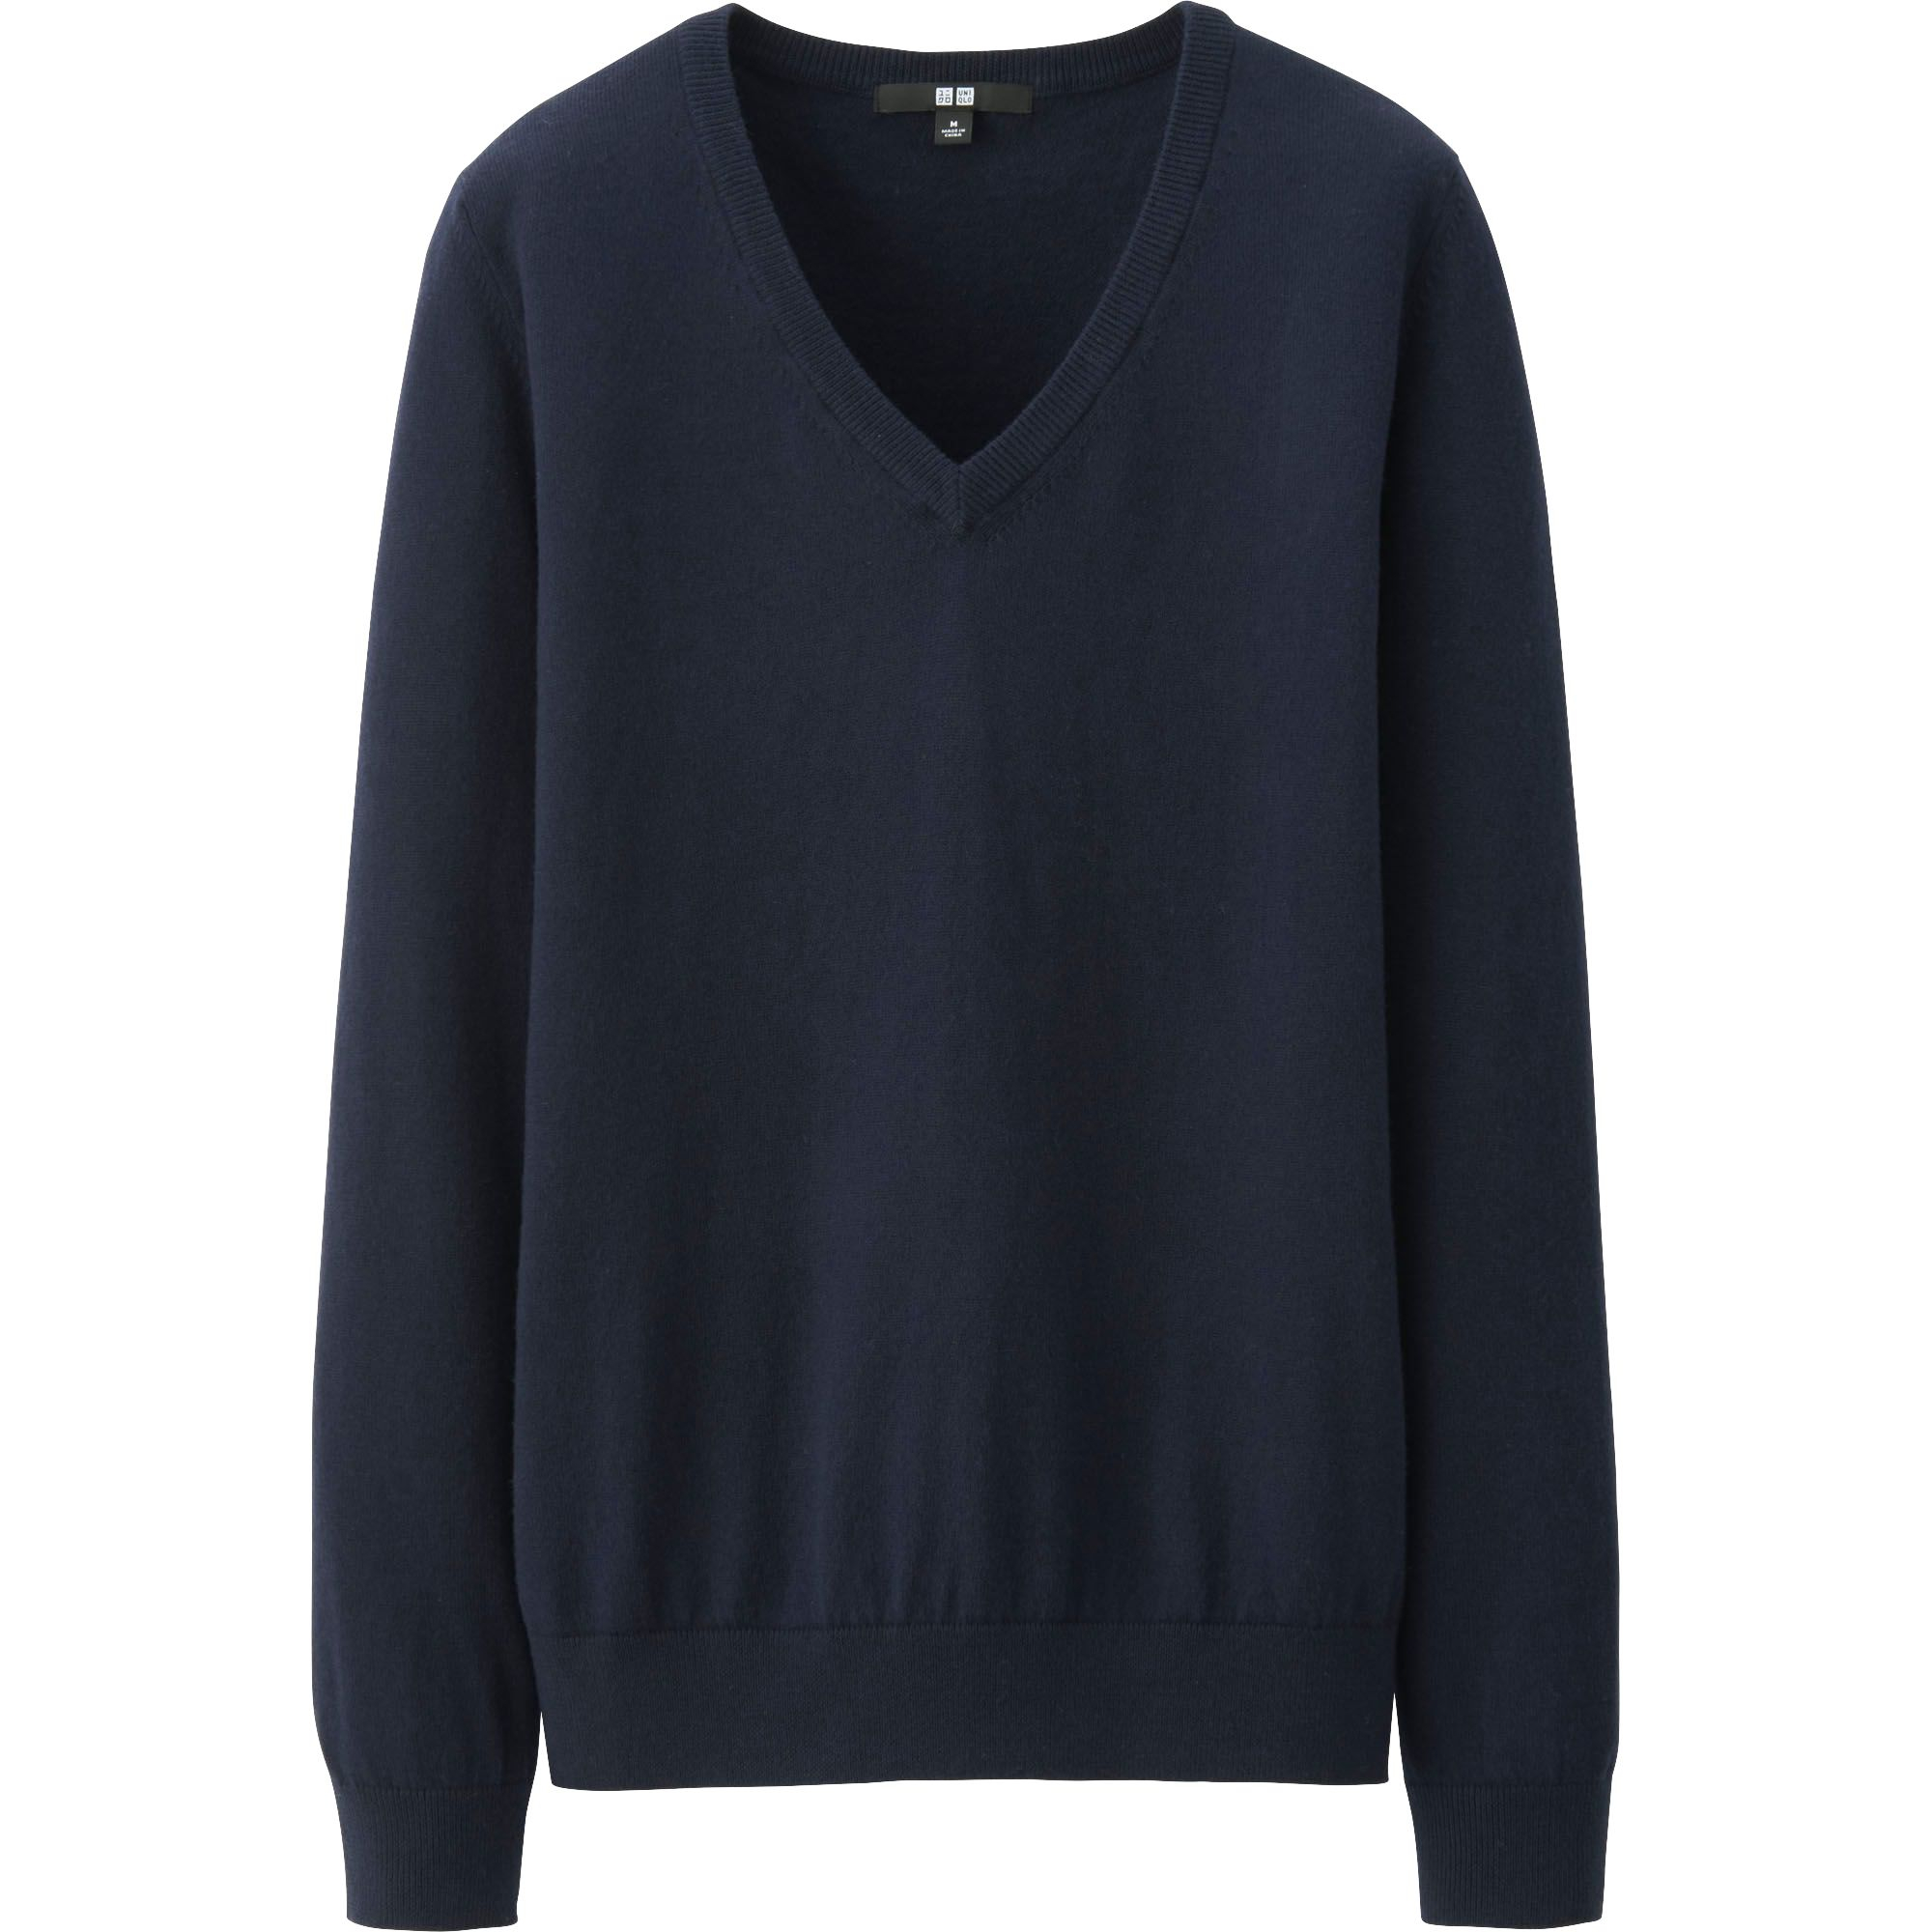 Shop for navy blue pullover sweater online at Target. Free shipping on purchases over $35 and save 5% every day with your Target REDcard. Target / Women / navy blue pullover sweater (79) A New Day™ Navy.